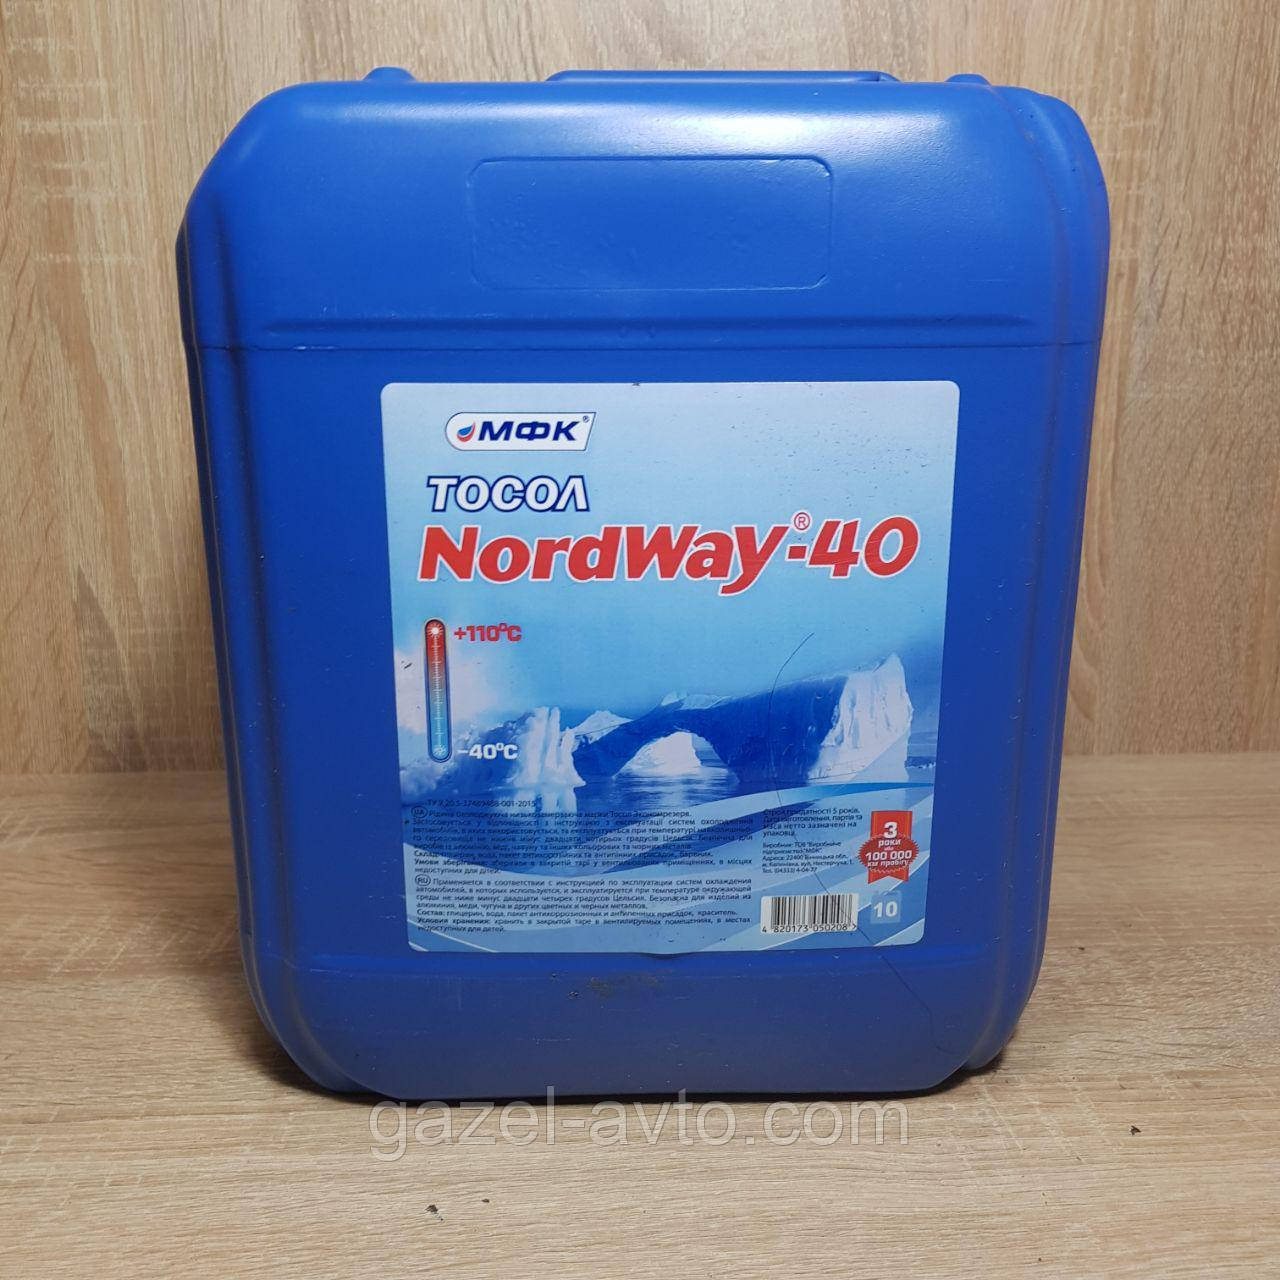 NORDWAY Тосол-40, 8.9 кг